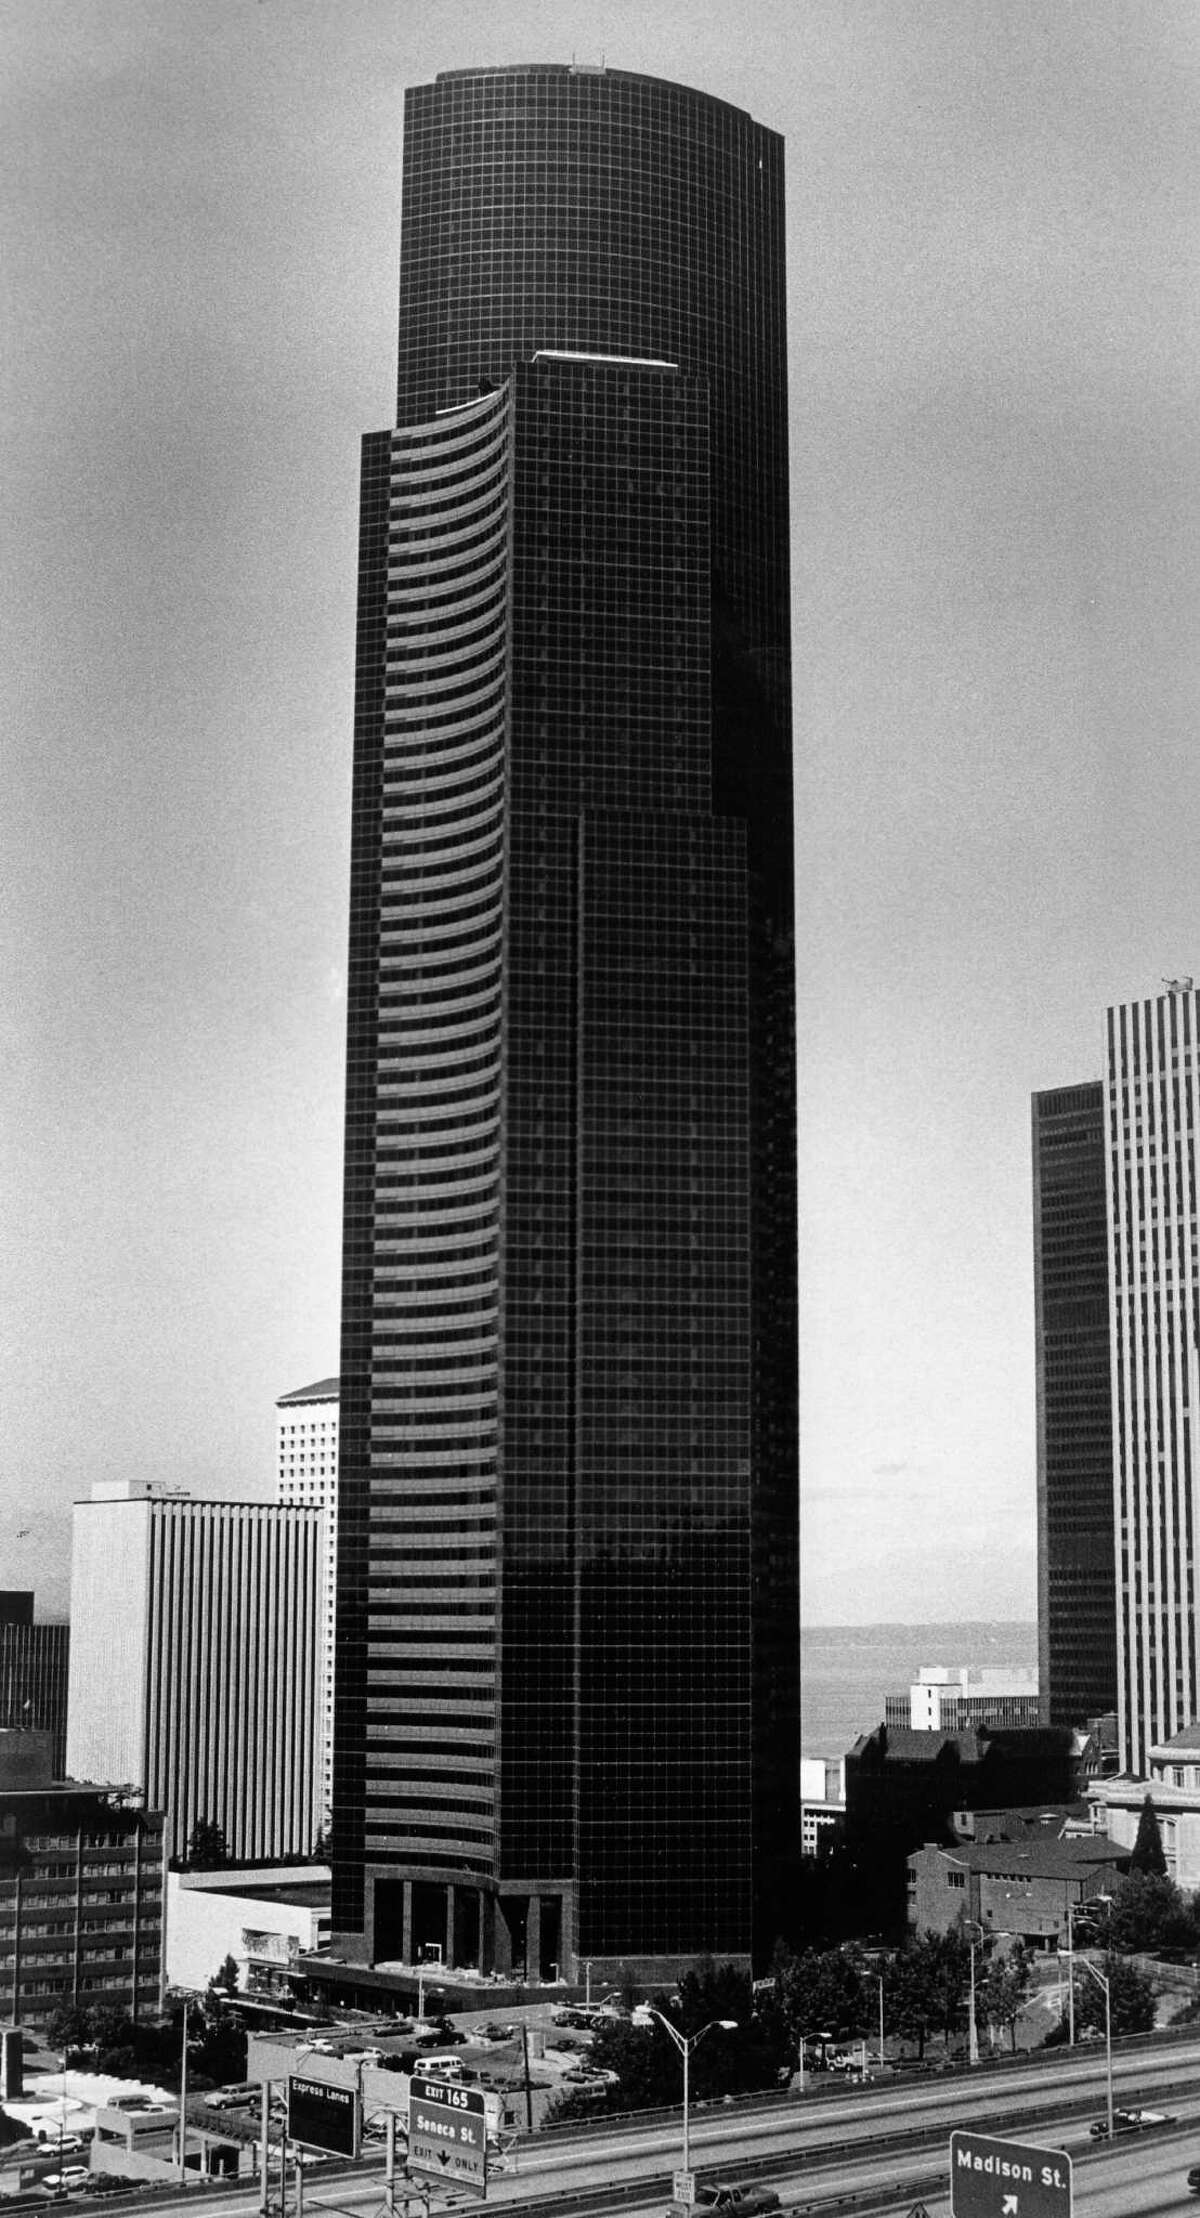 Here is a view of the 76-story Columbia Center tower, Seattle's tallest building, in 1985.